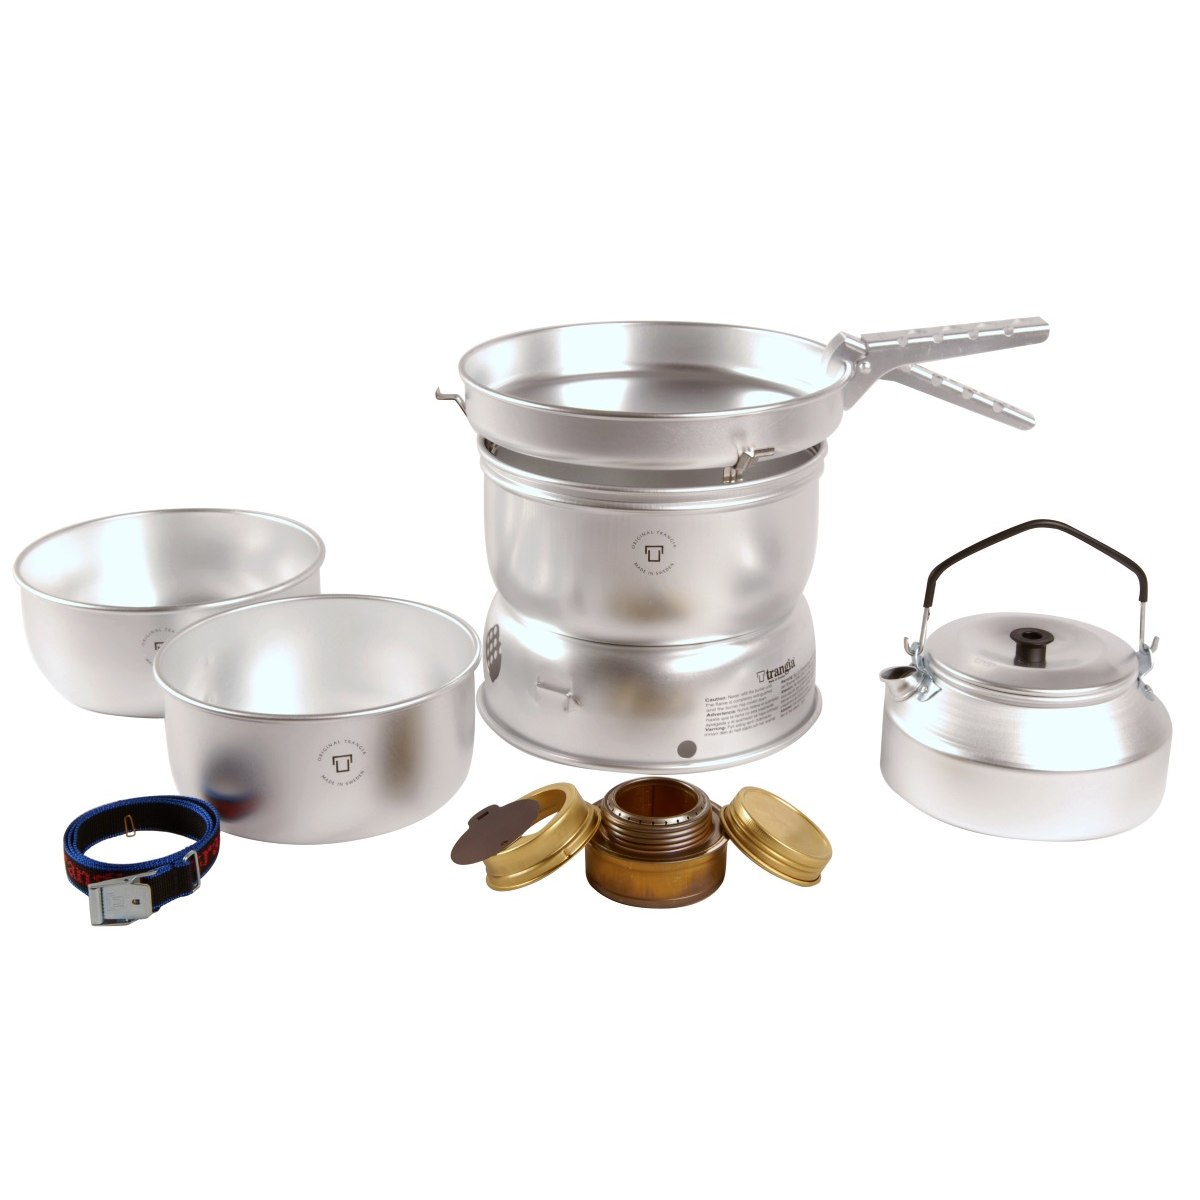 Trangia Storm Cooker 25-2 UL - Stove System with Kettle